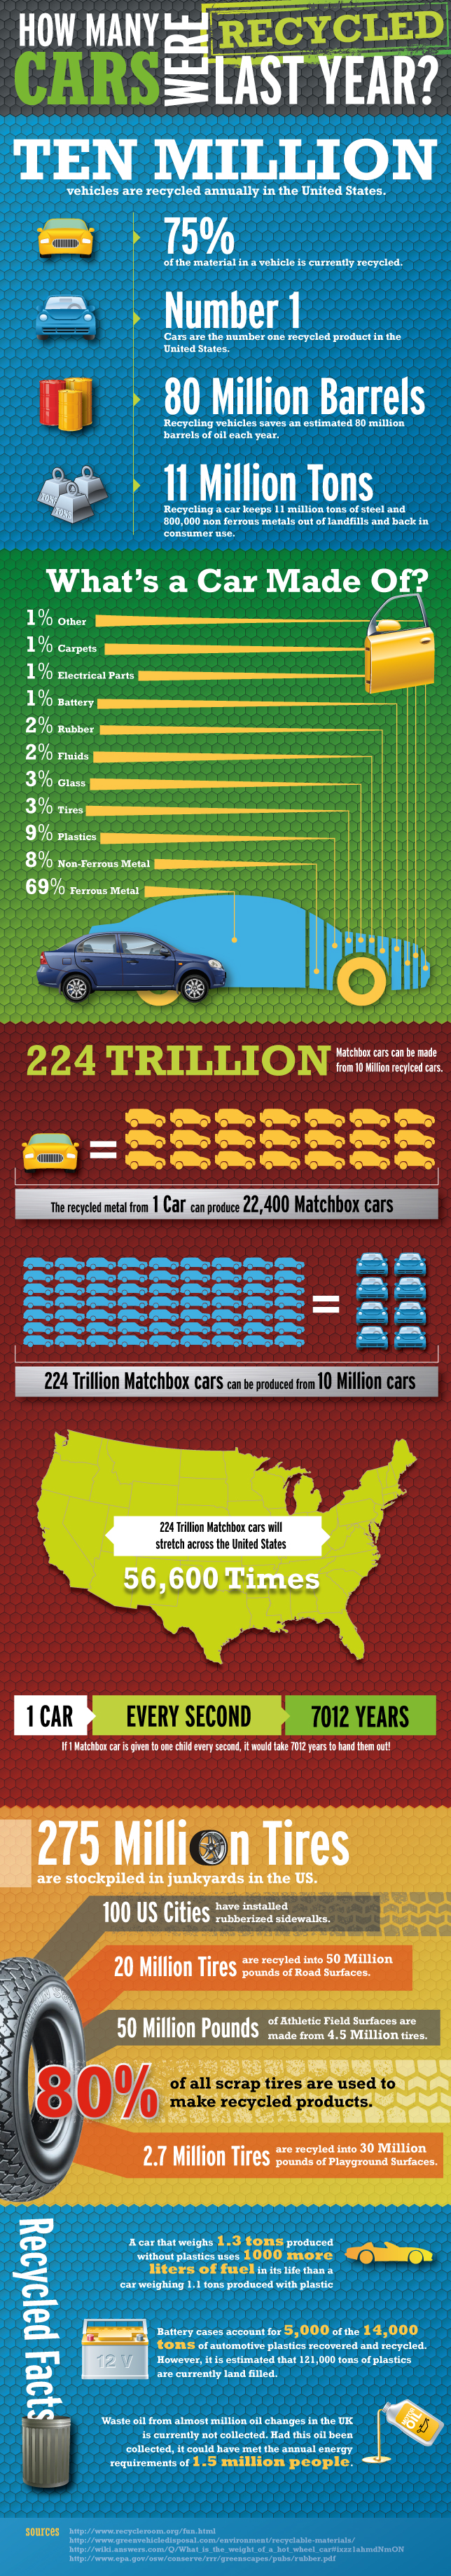 How many cars were recycled last year